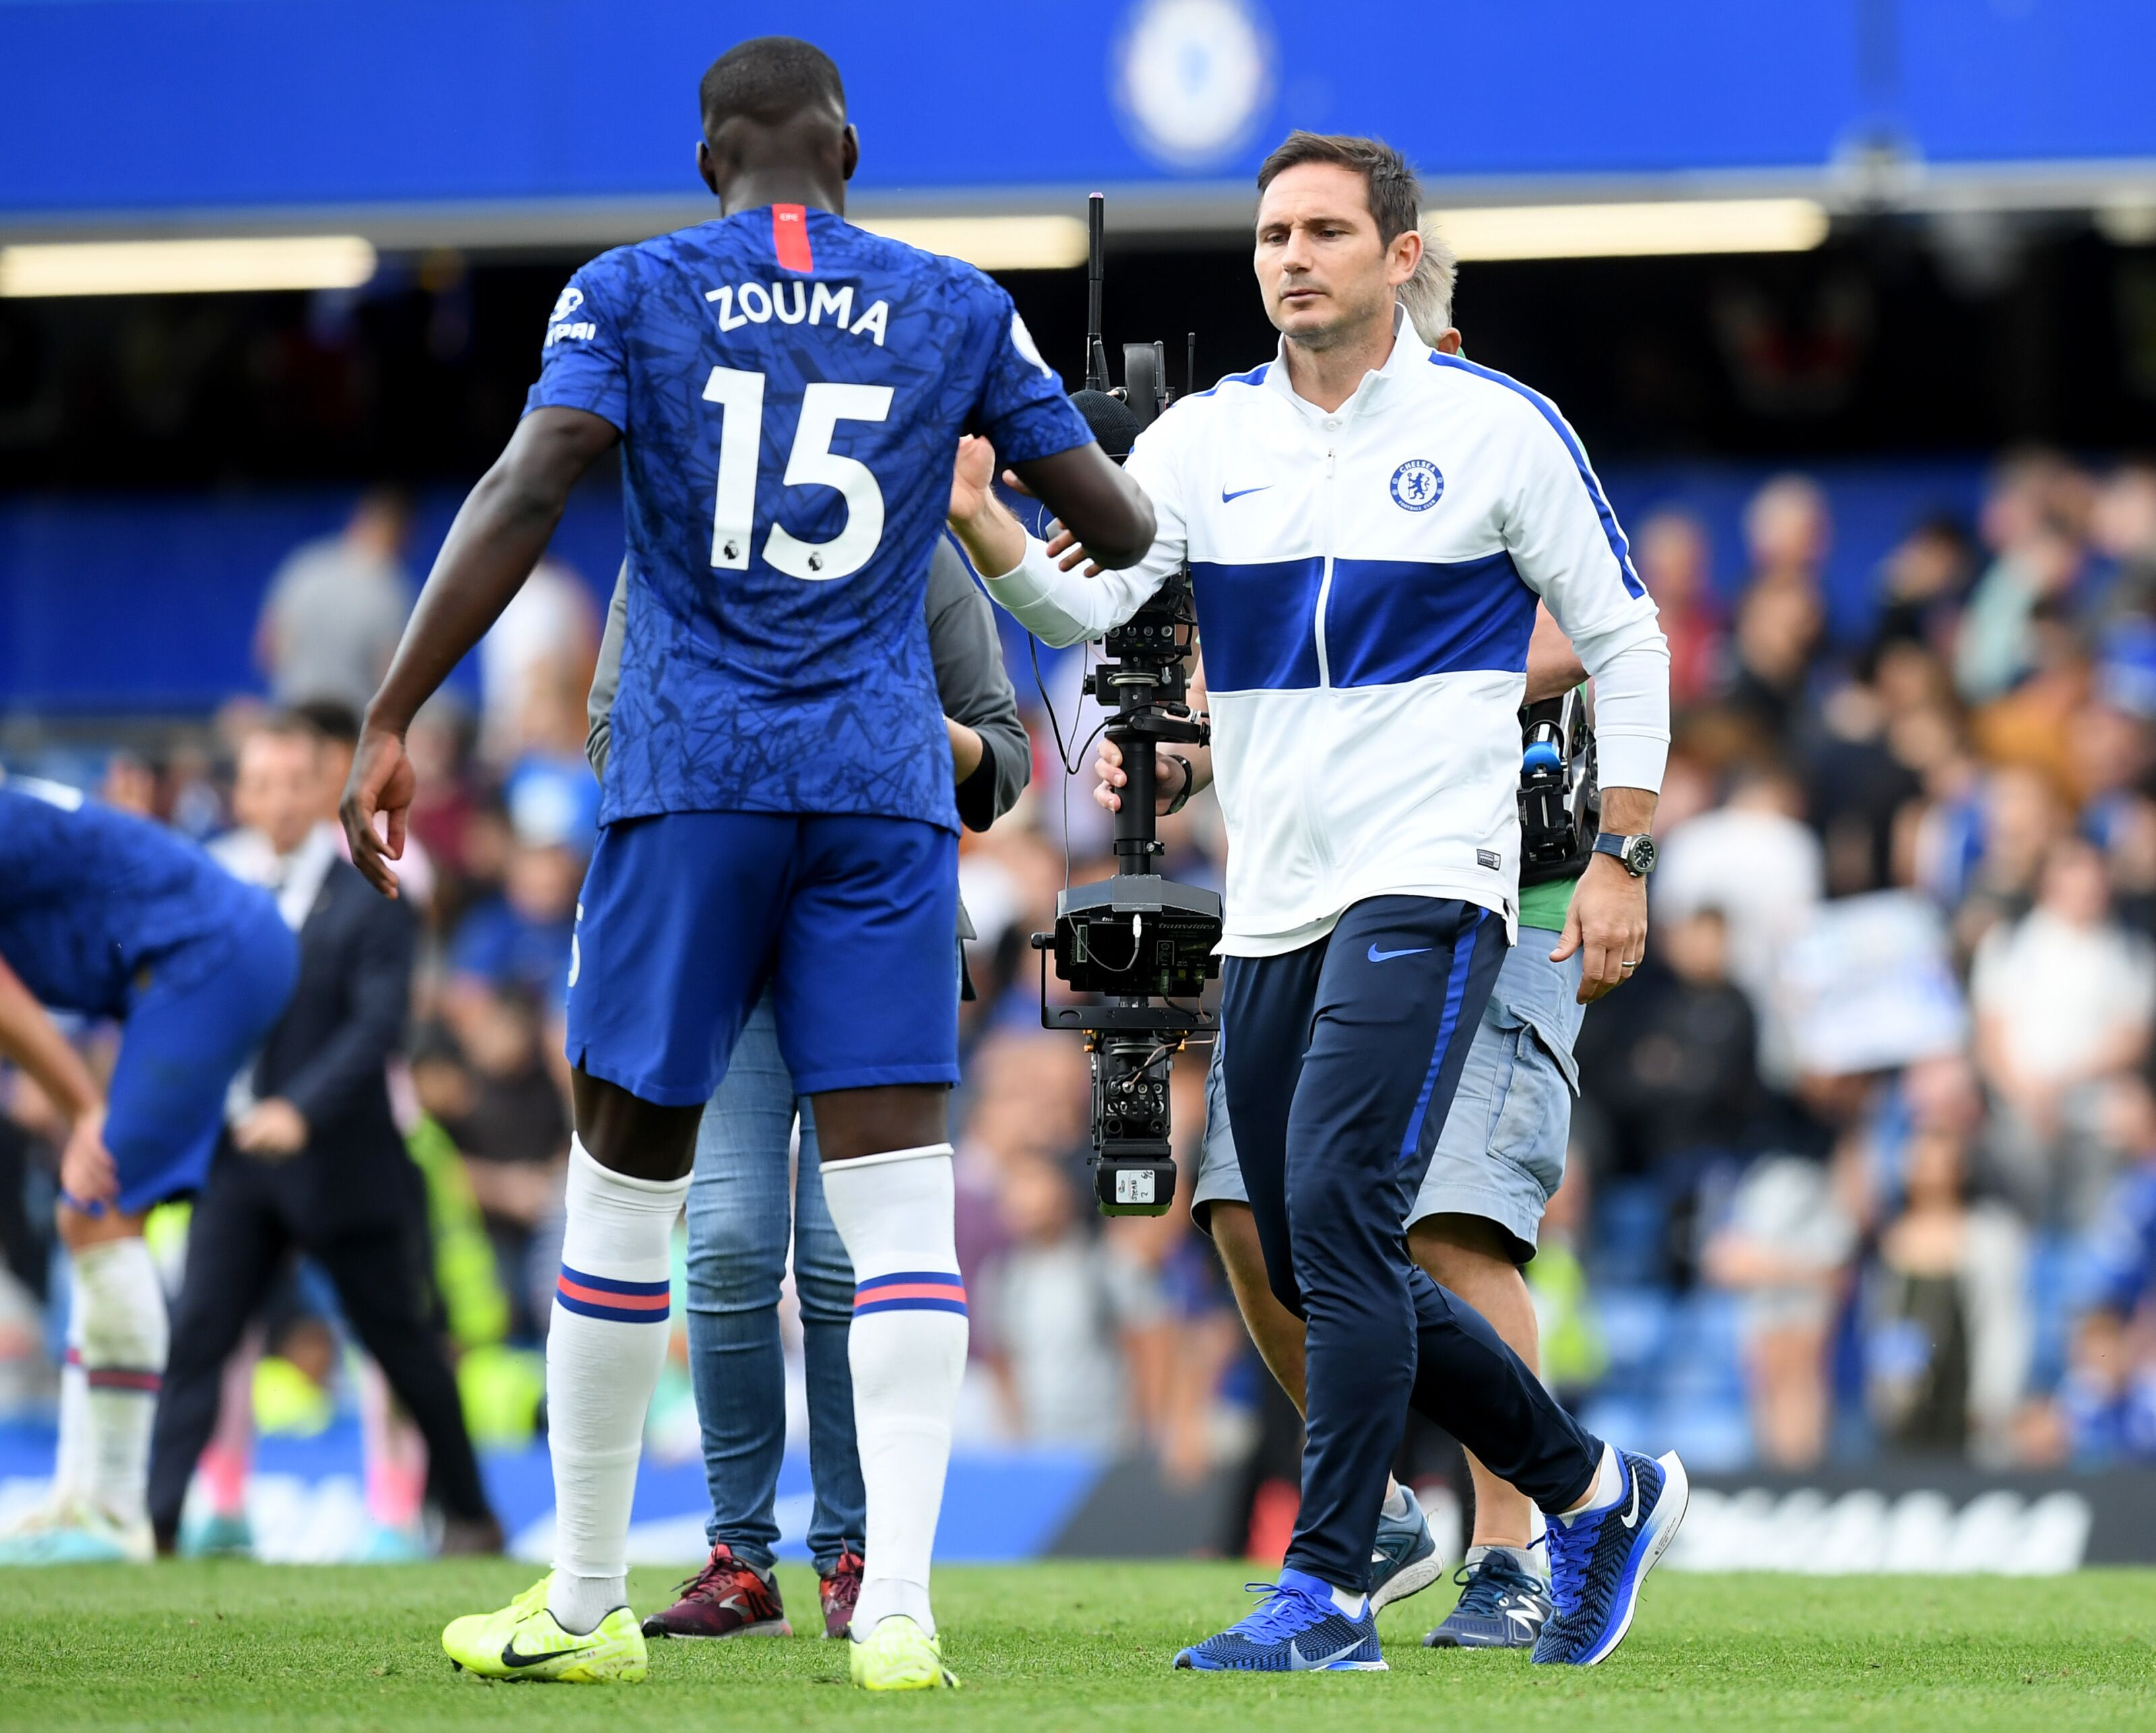 Chelsea Tactics and Transfers: Developing well does not mean all is well